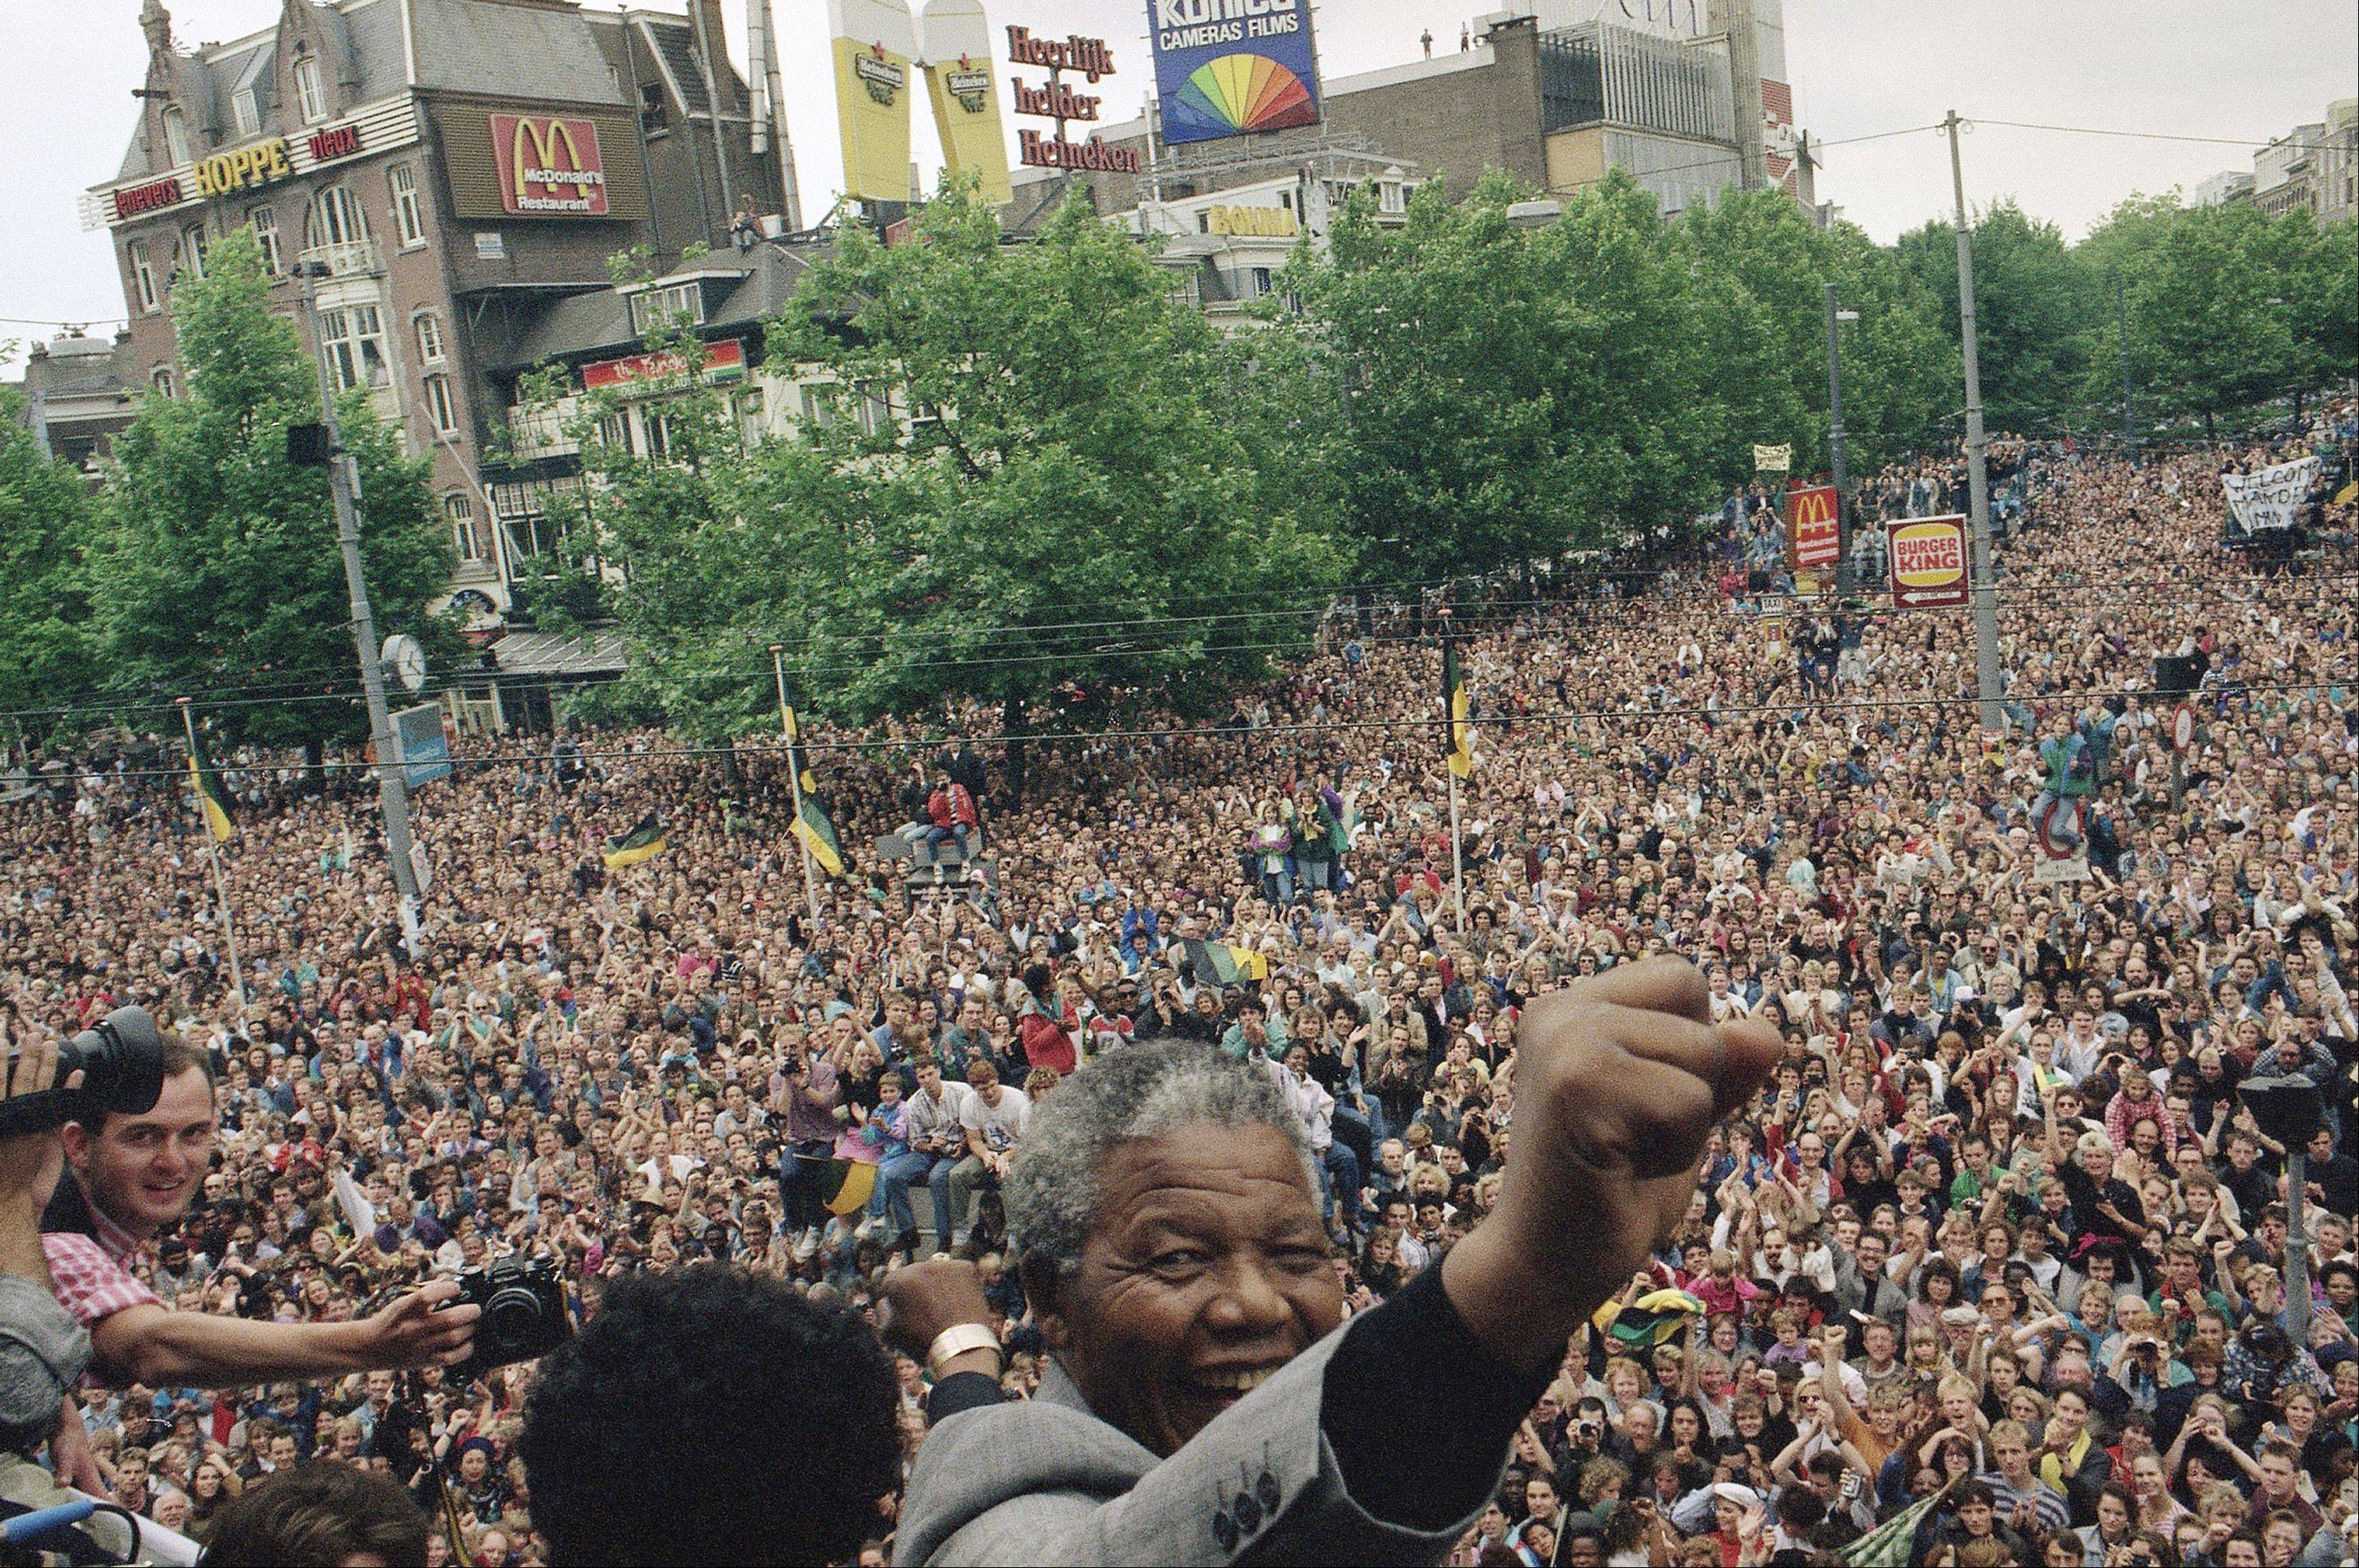 South African leader of the ANC Nelson Mandela raises his fist after addressing a crowd of about 15,000 people from the balcony of the city theater Saturday, June 16, 1990 in Amsterdam.